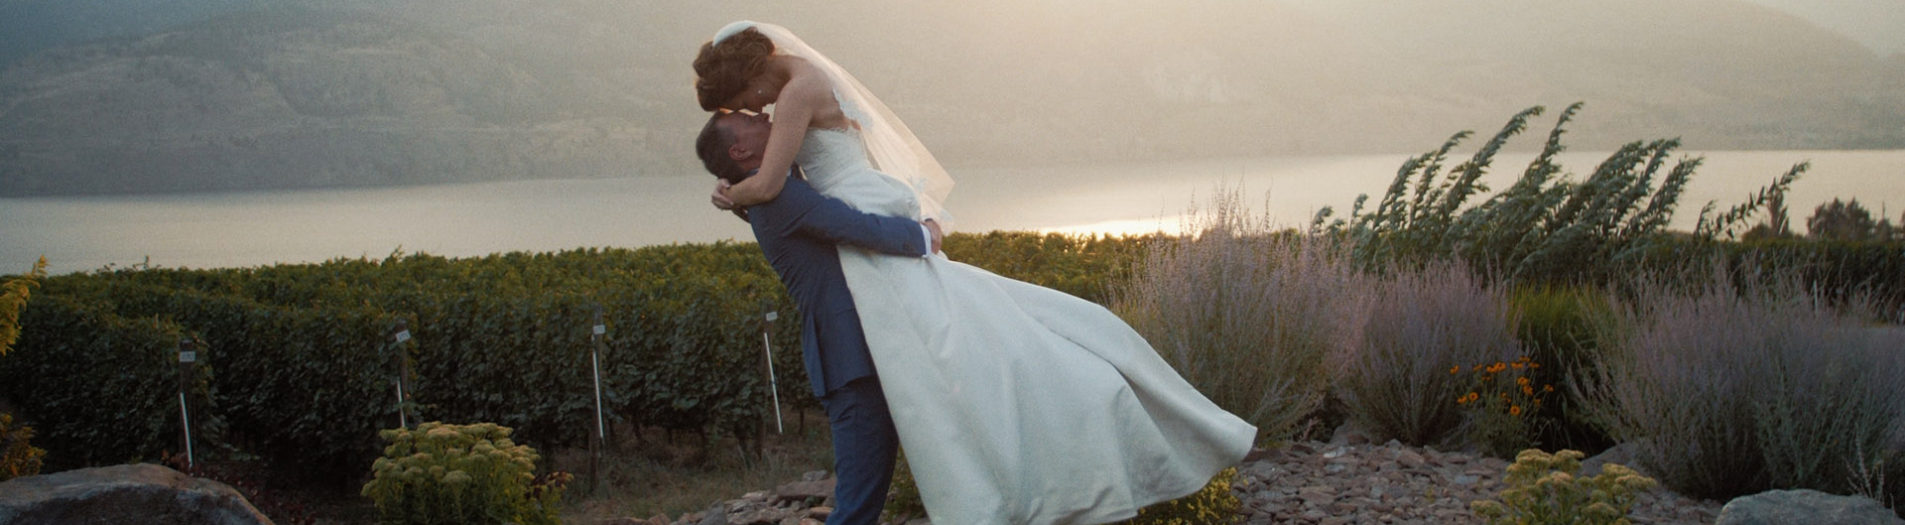 Wedding Film at Painted Rock Estate Winery, Penticton BC | Taryn + Mike